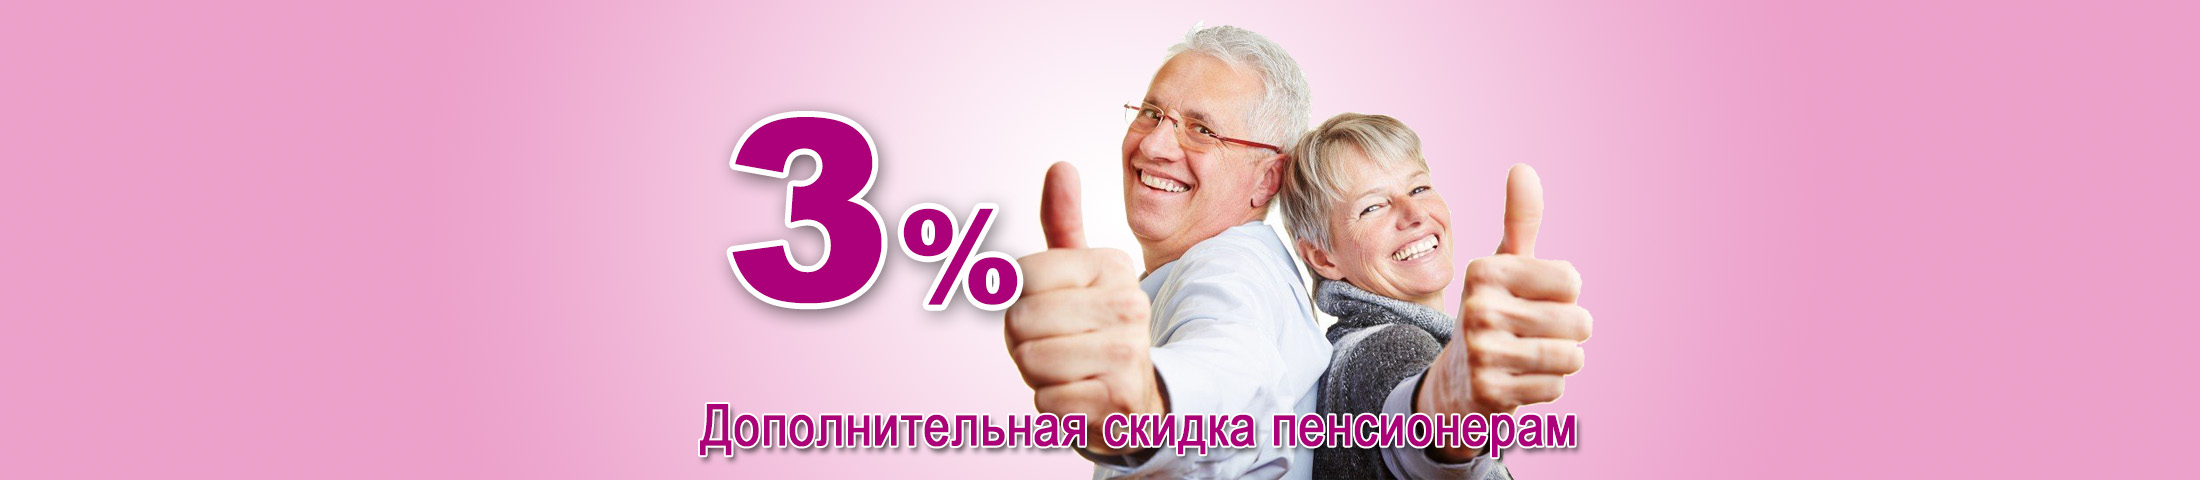 banner-pensionery